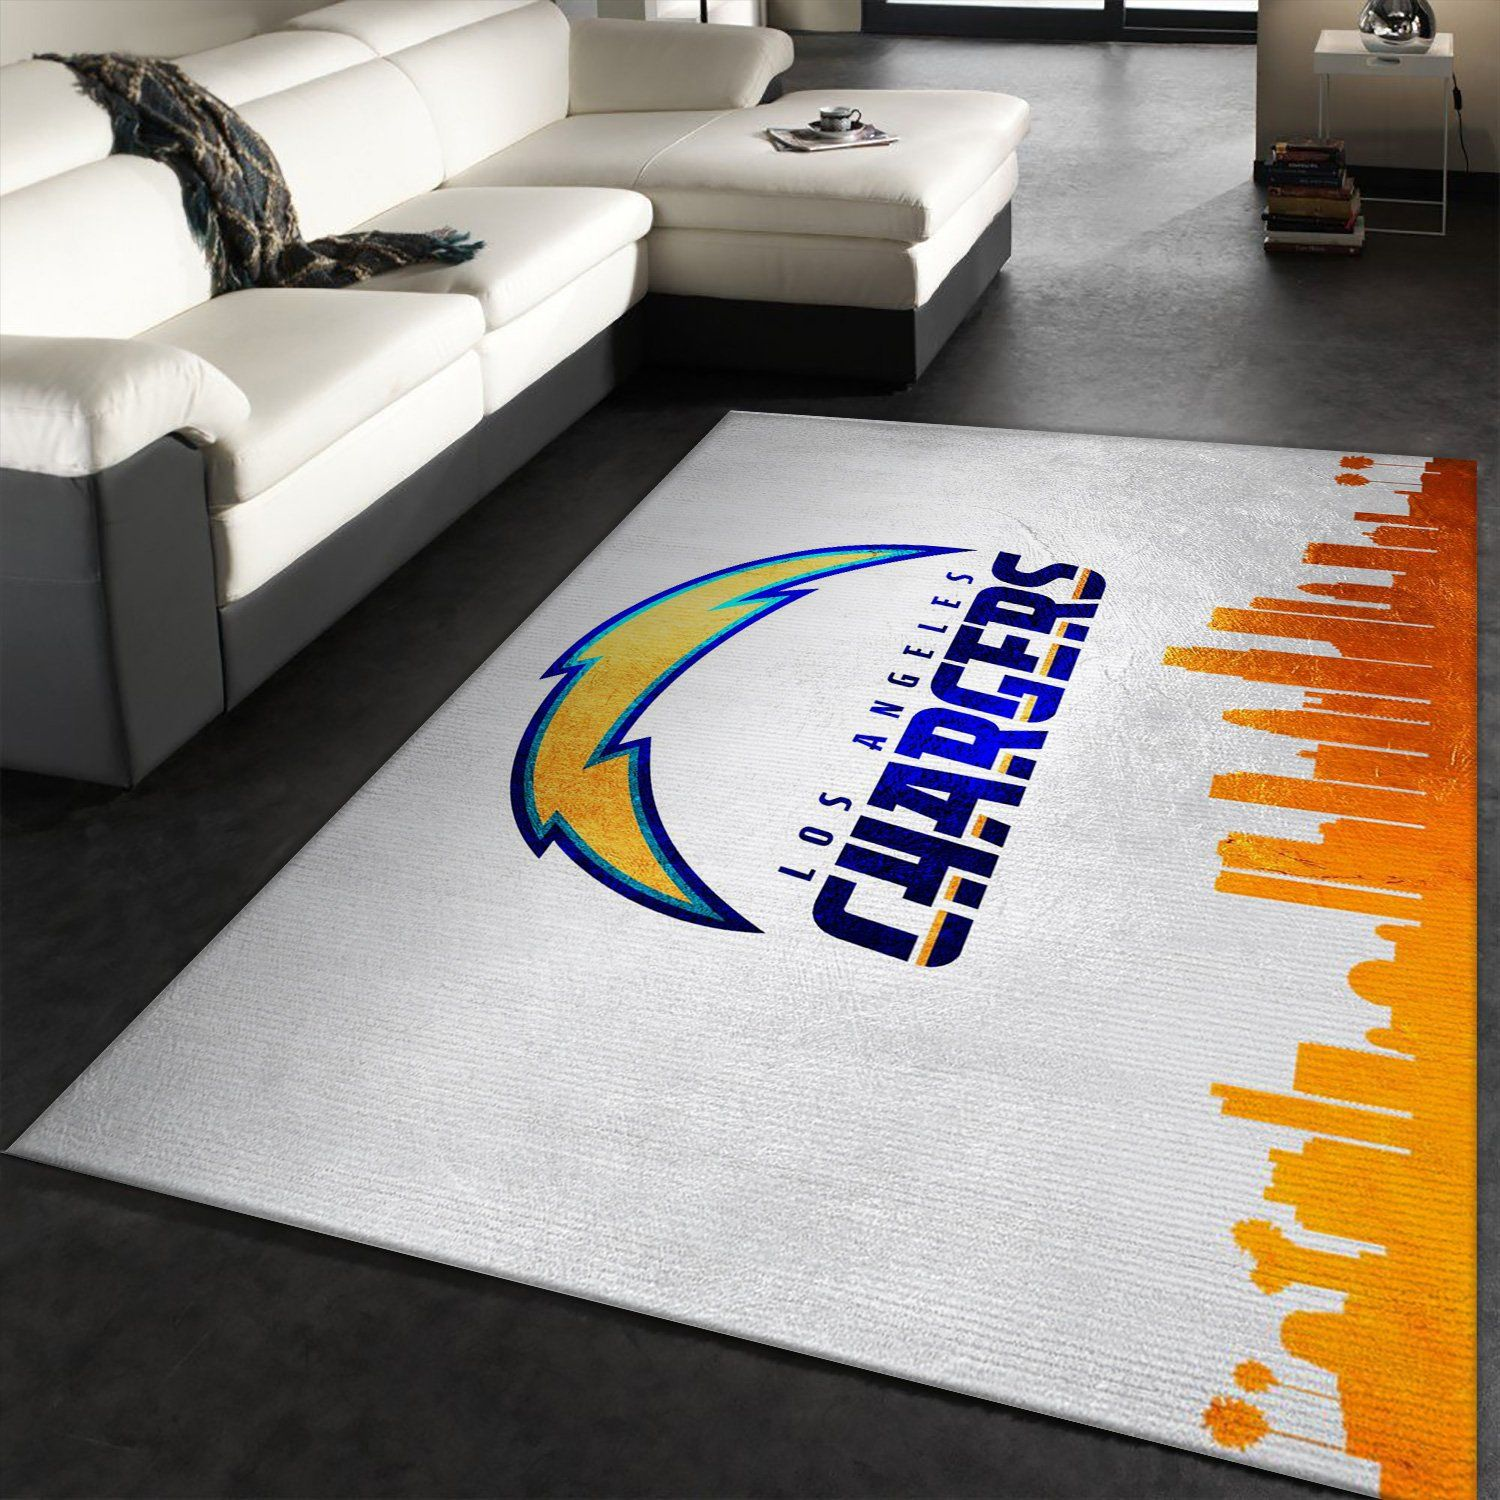 Los Angeles Chargers NFL Area Rug, Kitchen Rug, Floor Decor Home Decor